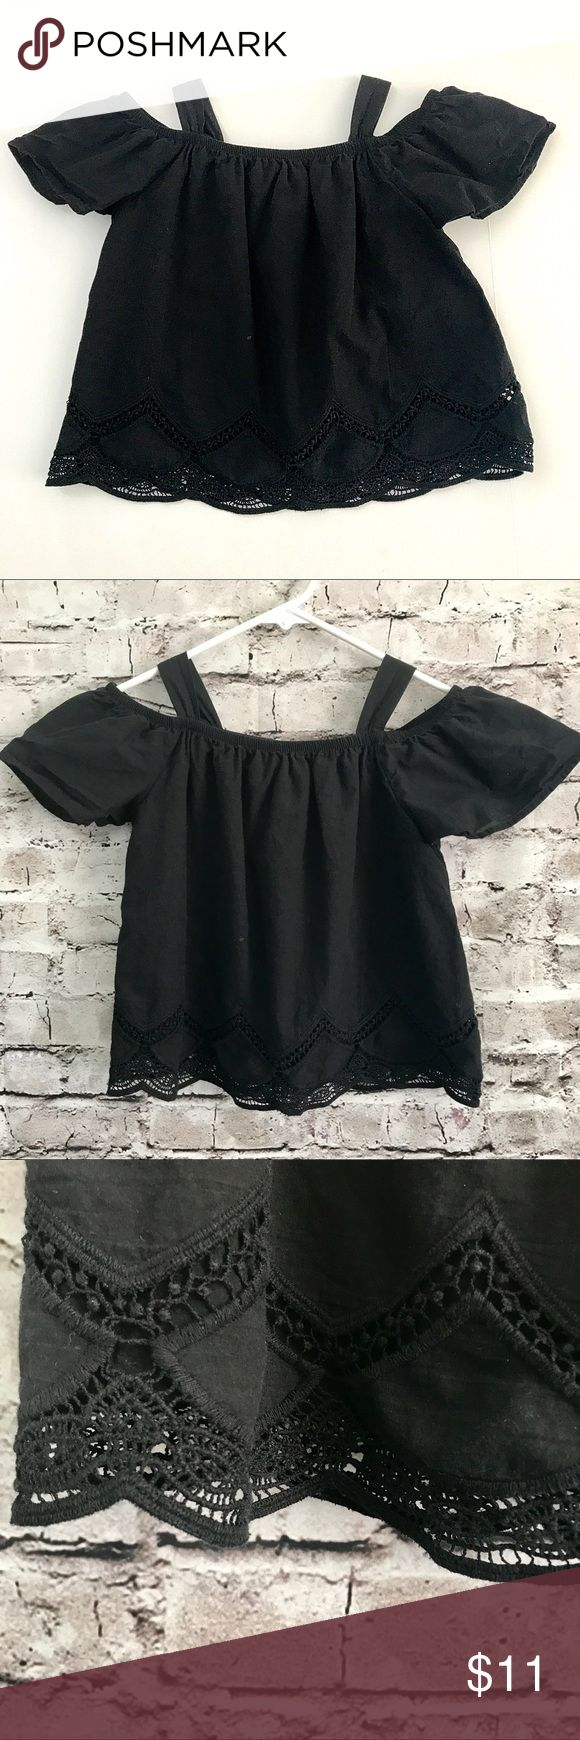 ‼️Cat & Jack Girls Cold Shoulder Lace Top‼️ Art Class  Girls cold shoulder top A line design.  Cold shoulder but has 2 straps that keep the Top in place.  Lace trim on the bottom. Elastic on the shoulders.  Has a Fiesta Vibe to it! Great for a party! This is such a cute special Top for a little girl. (Well, not that little)  Size is Girls 6/6X Adorable w leggings or a skinny jeans and booties! Goes w anything! It's all black!  Great Condition! 100% Cotton!  Machine washable  Length 14' Art…